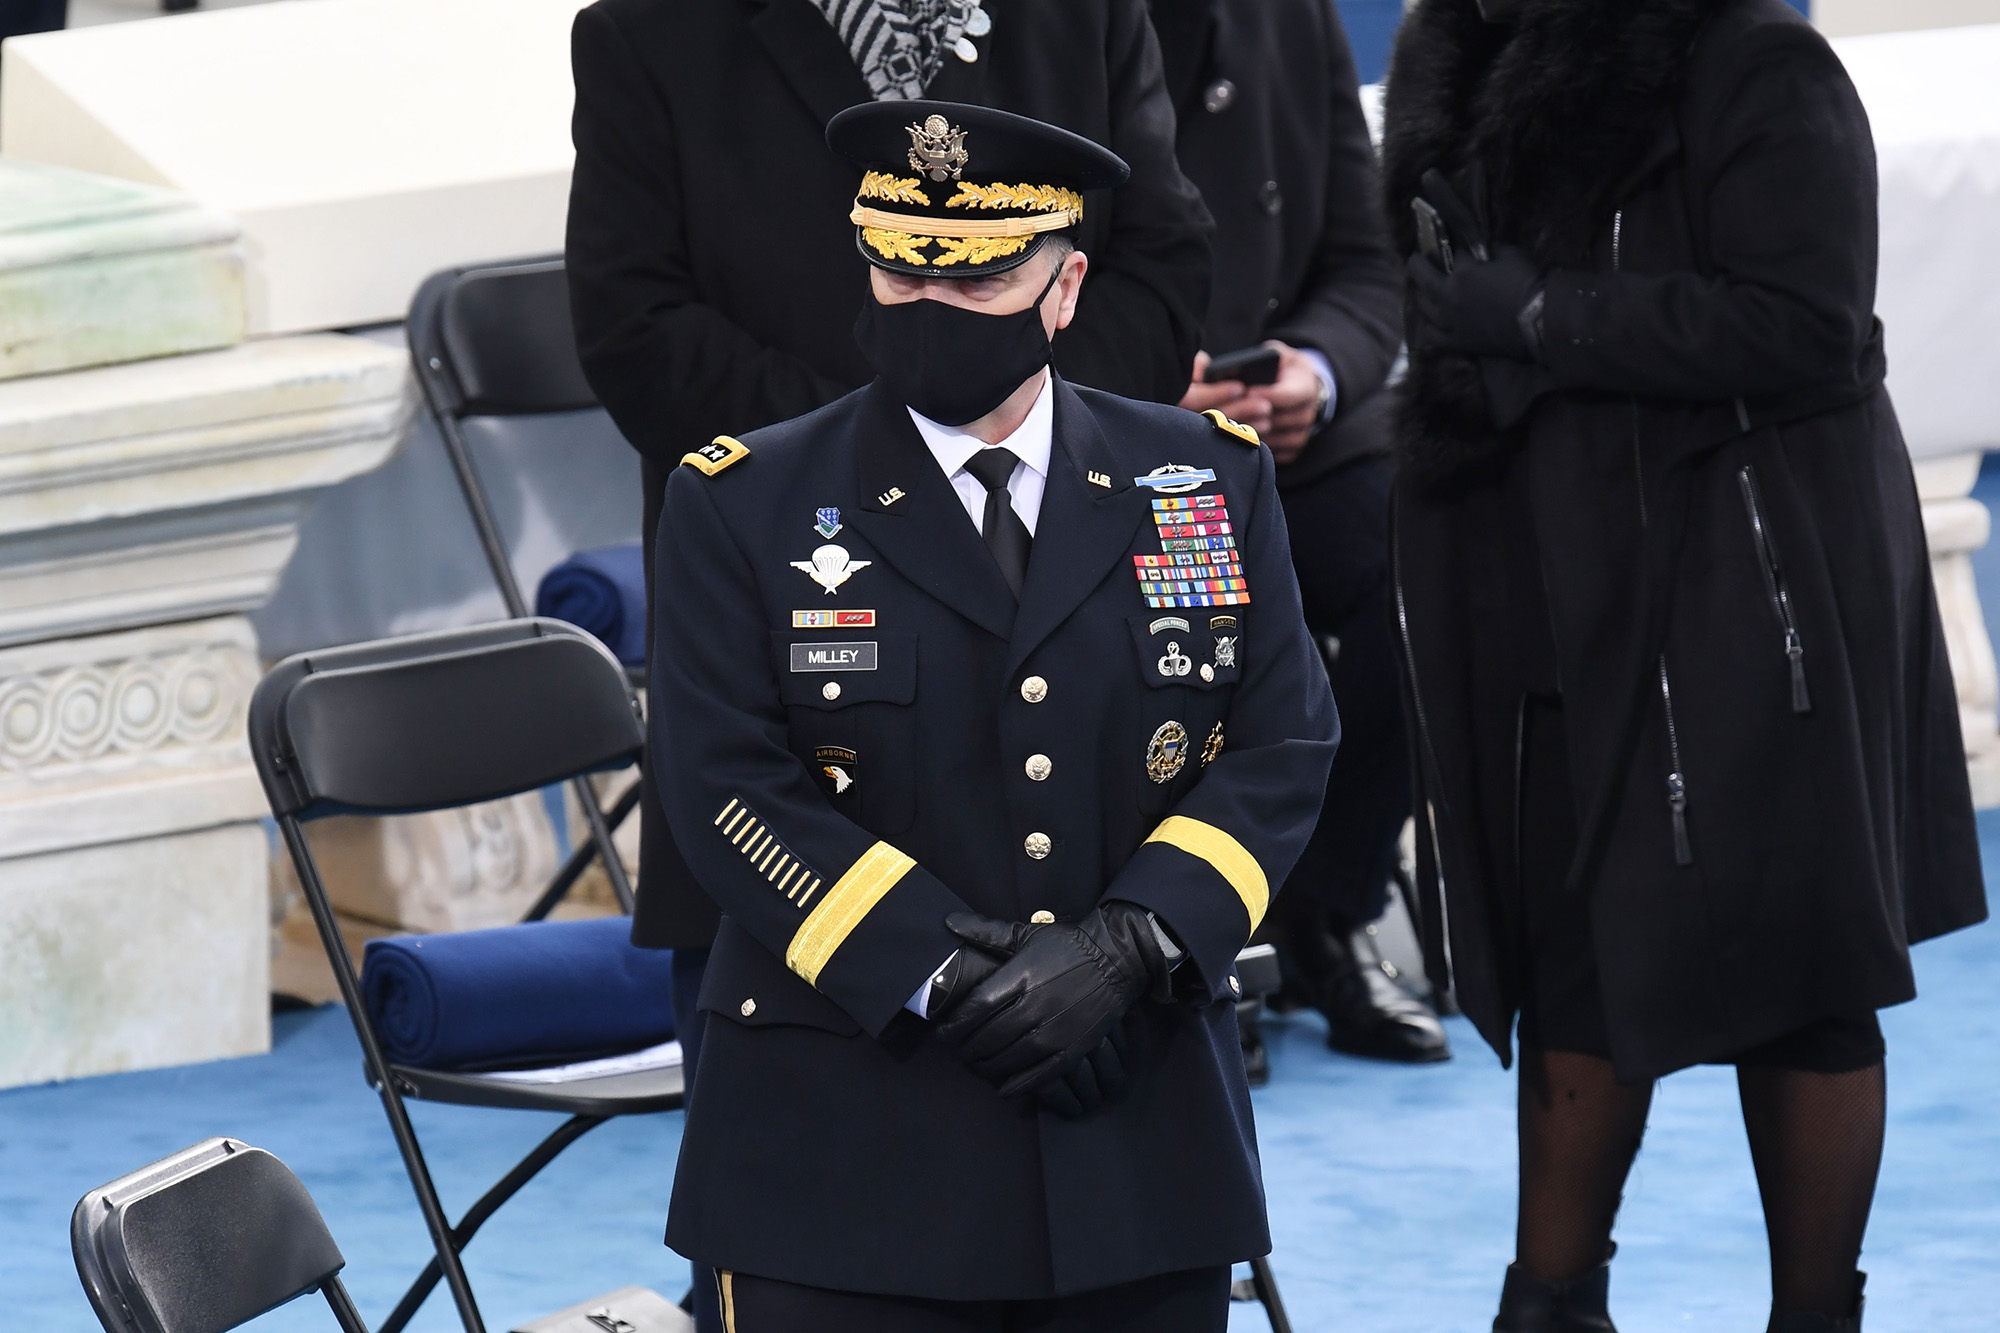 Chairman of the Joint Chiefs of Staff Gen. Mark Milley arrives for the inauguration of Joe Biden as the 46th president on Jan. 20, 2021, at the Capitol in Washington. (Olivier Douliery/AFP via Getty Images)